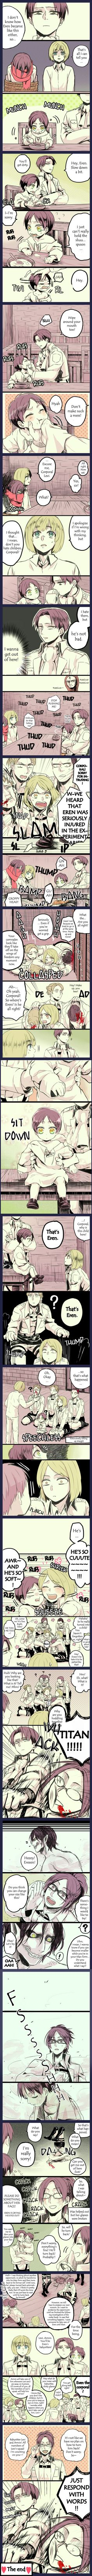 A comic about Eren who turned into a child by one of Hanji's experiments [Part 2]